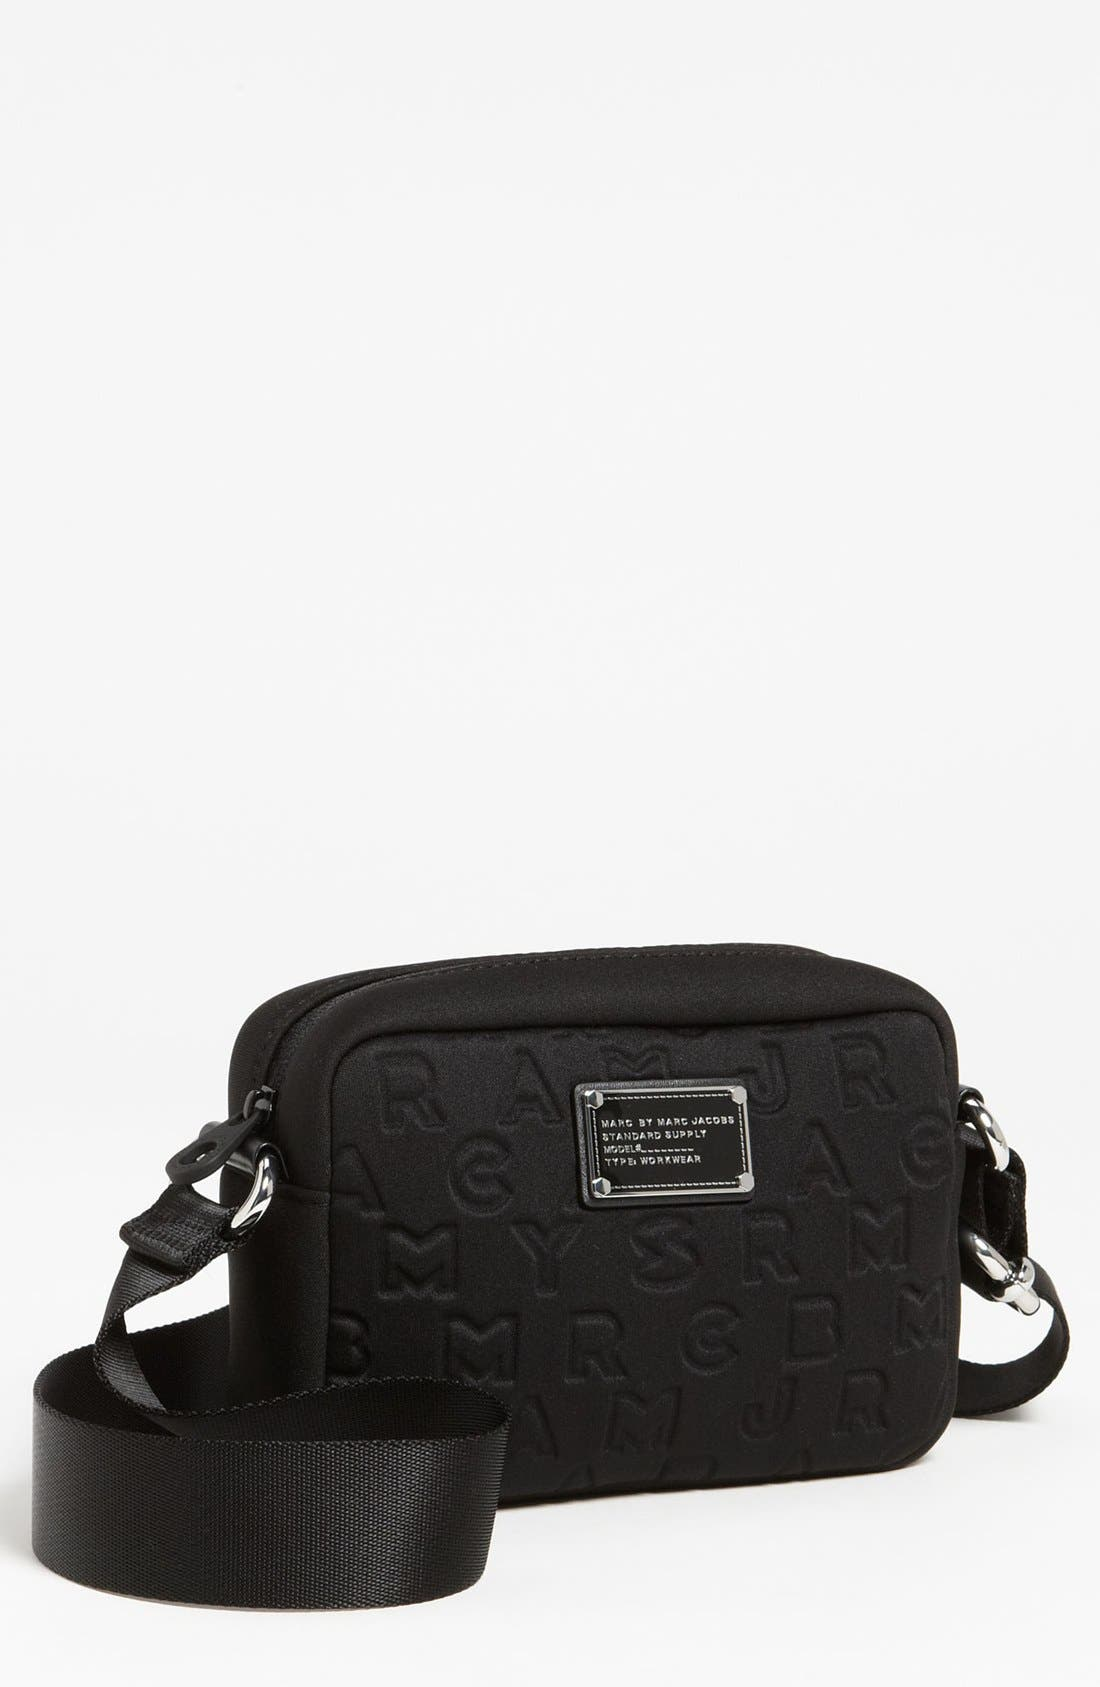 Main Image - MARC BY MARC JACOBS 'Dreamy' Camera Bag